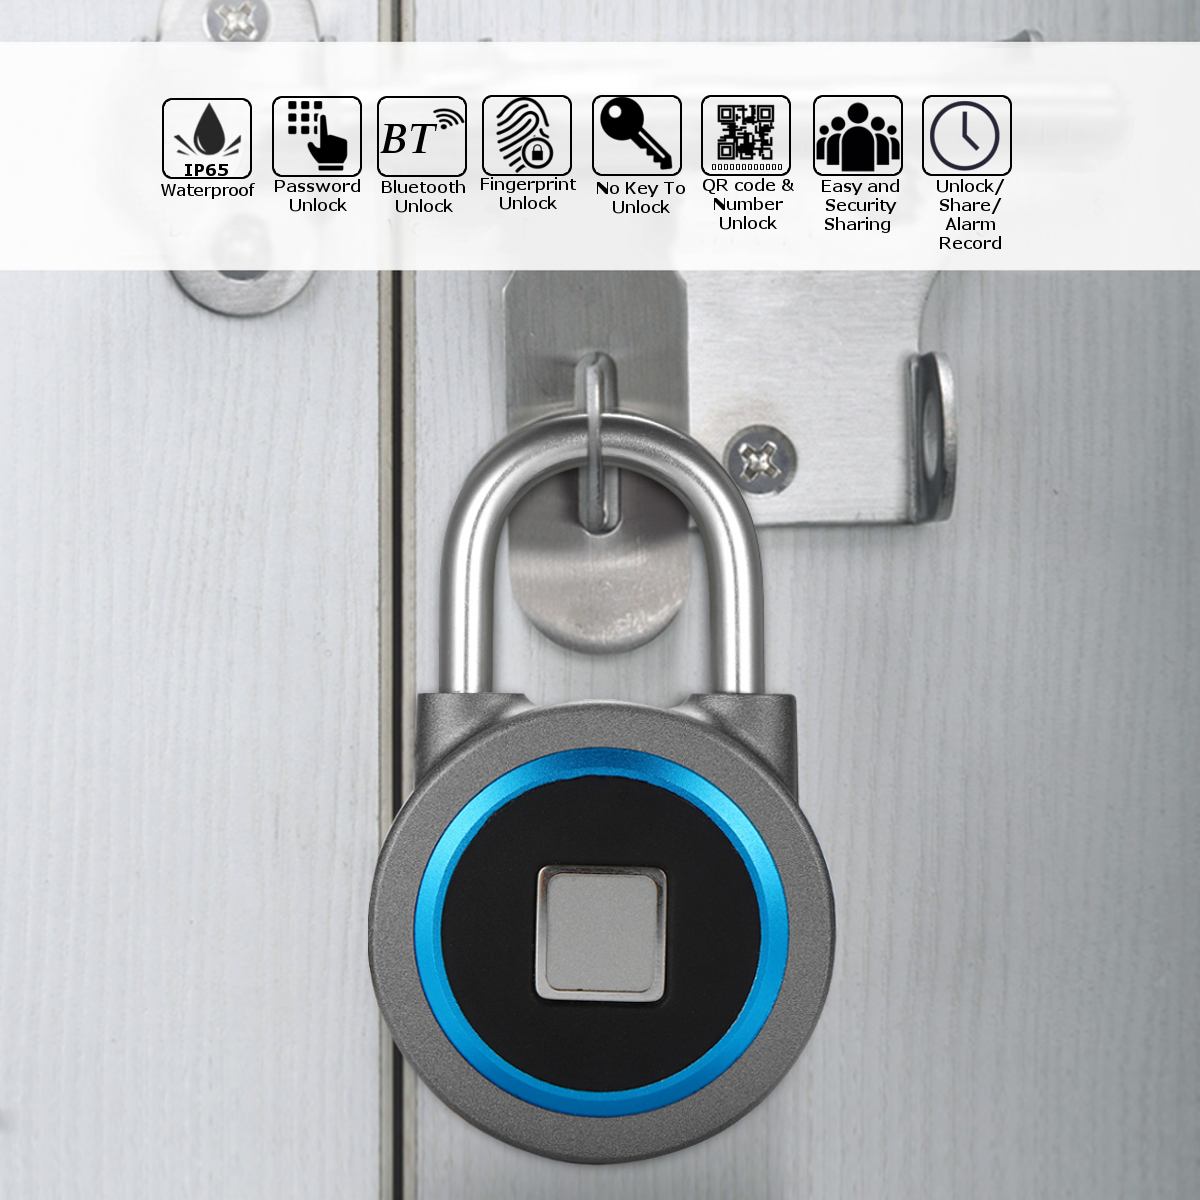 Bluetooth Lock APP Control Security Fingerprint Recognition Anti Theft Padlock 15 Groups Fingerprints for IOS/Android Waterproof